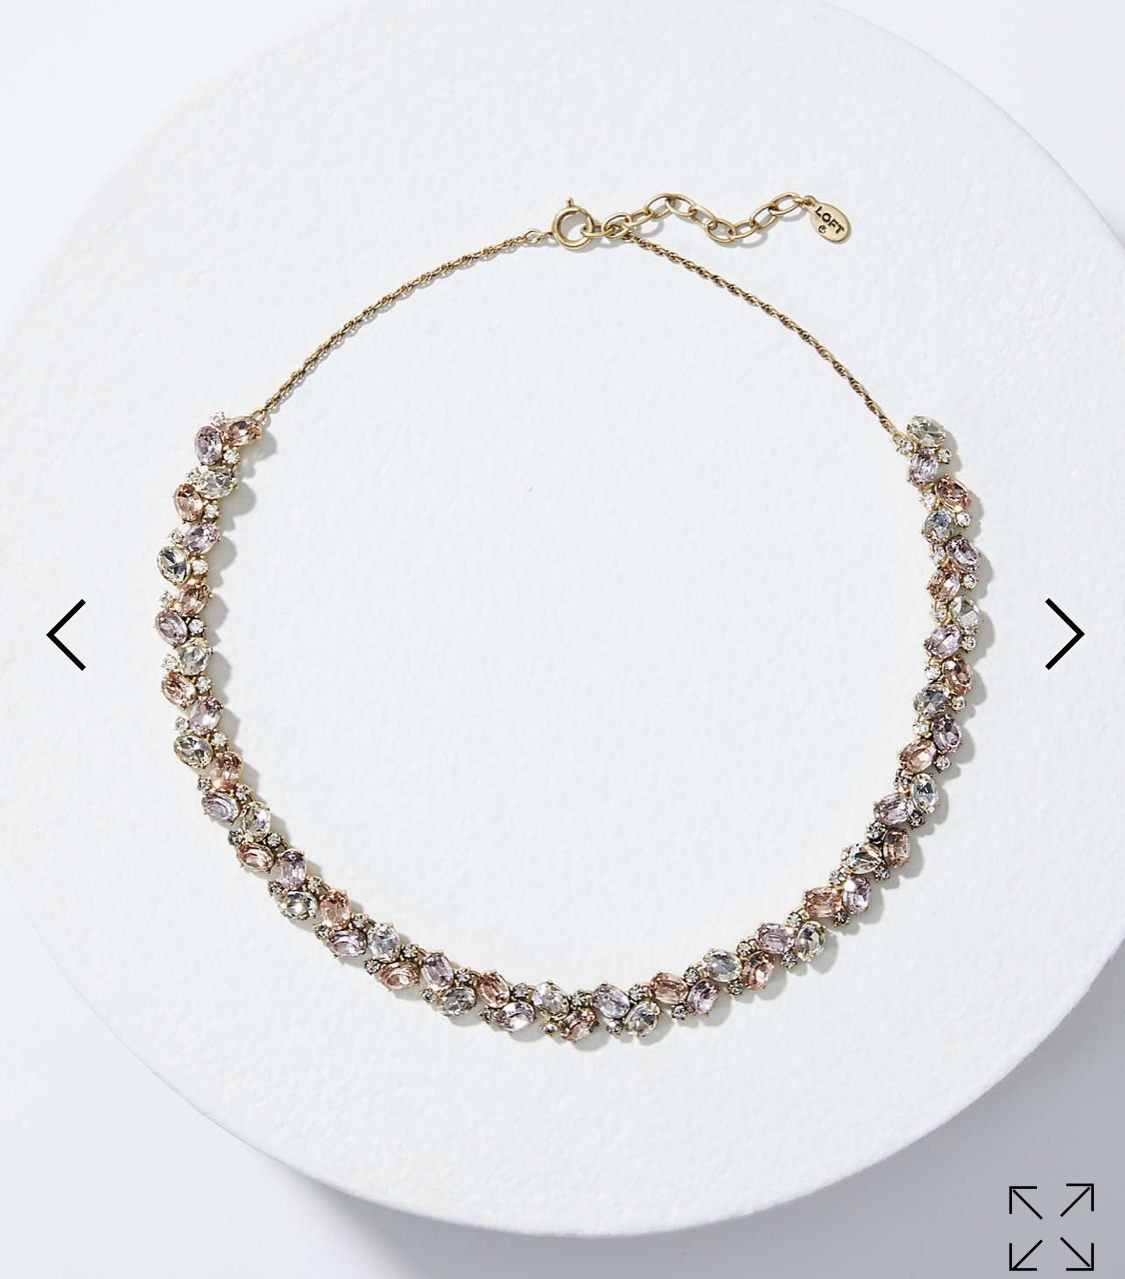 Gorgeous Necklace - $44 but currently half off at Loft plus free shipping